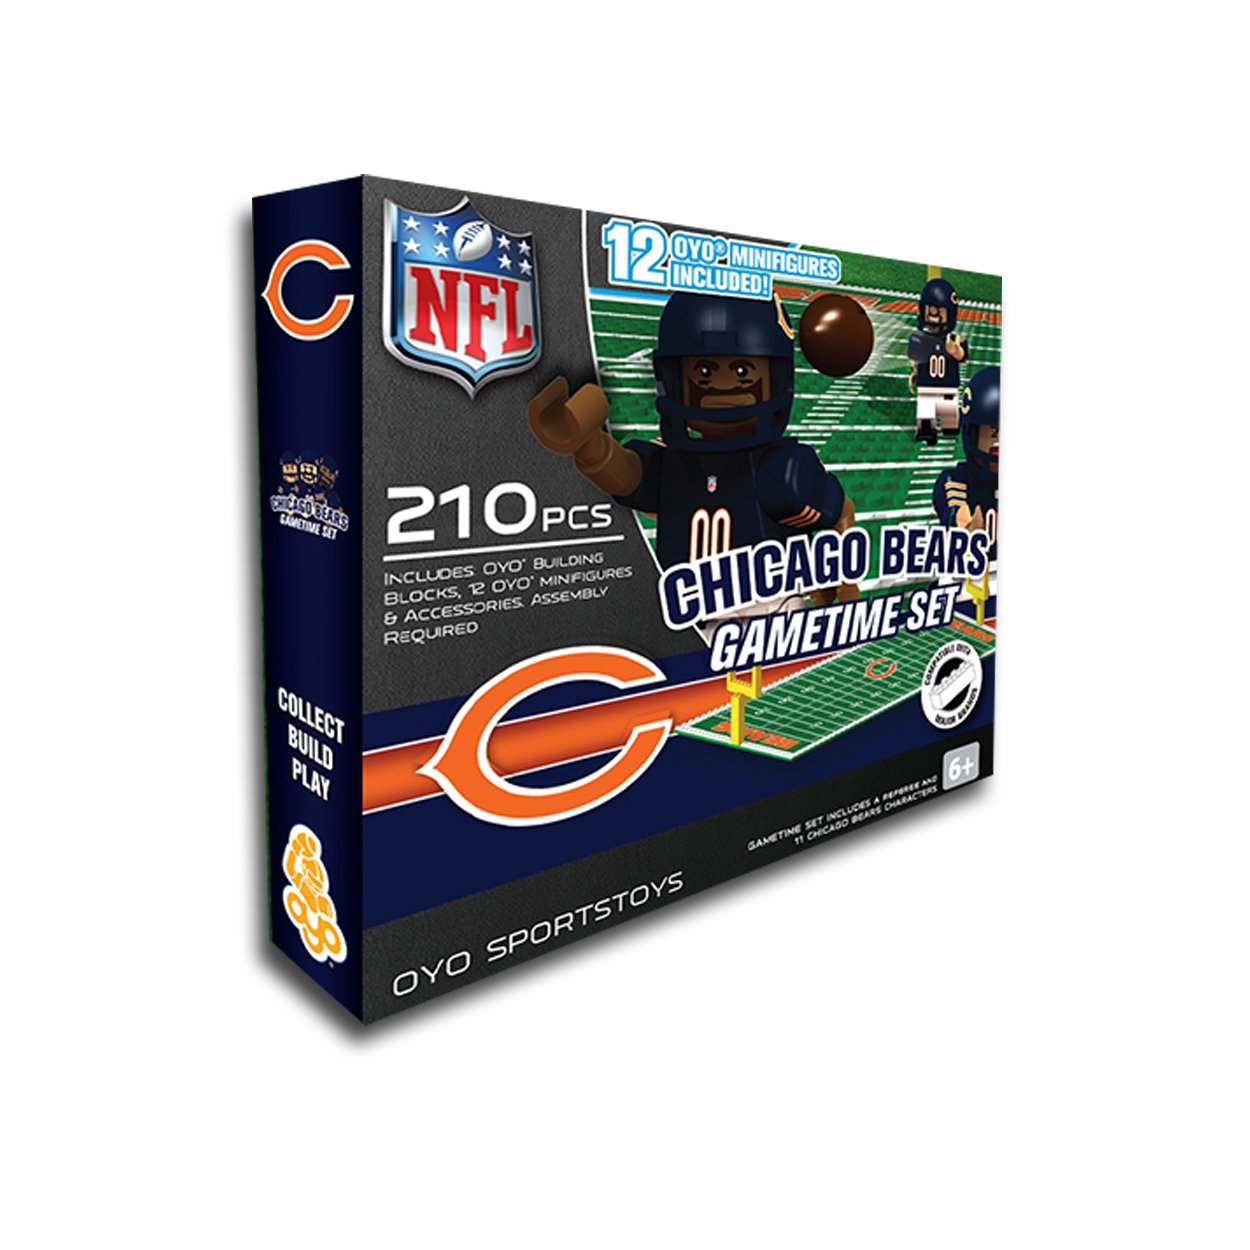 Chicago bears bathroom accessories - Amazon Com Nfl Chicago Bears Game Time Set Sports Fan Toy Figures Sports Outdoors